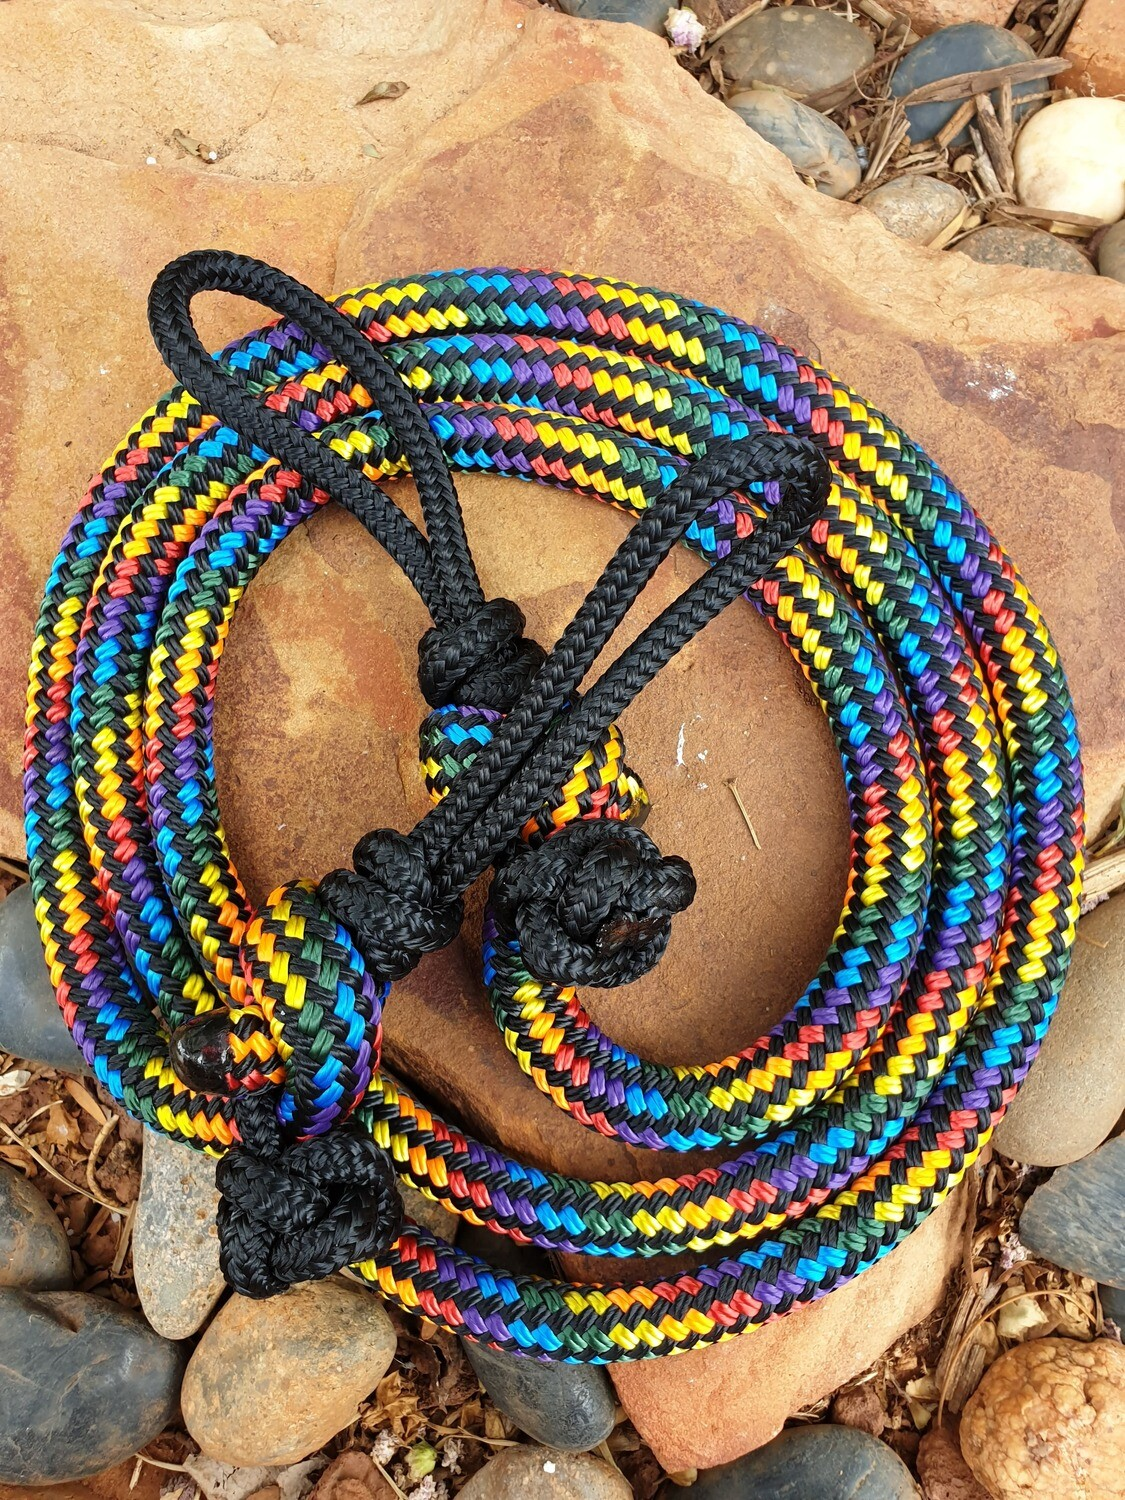 Black Rainbow Joined Rope Reins